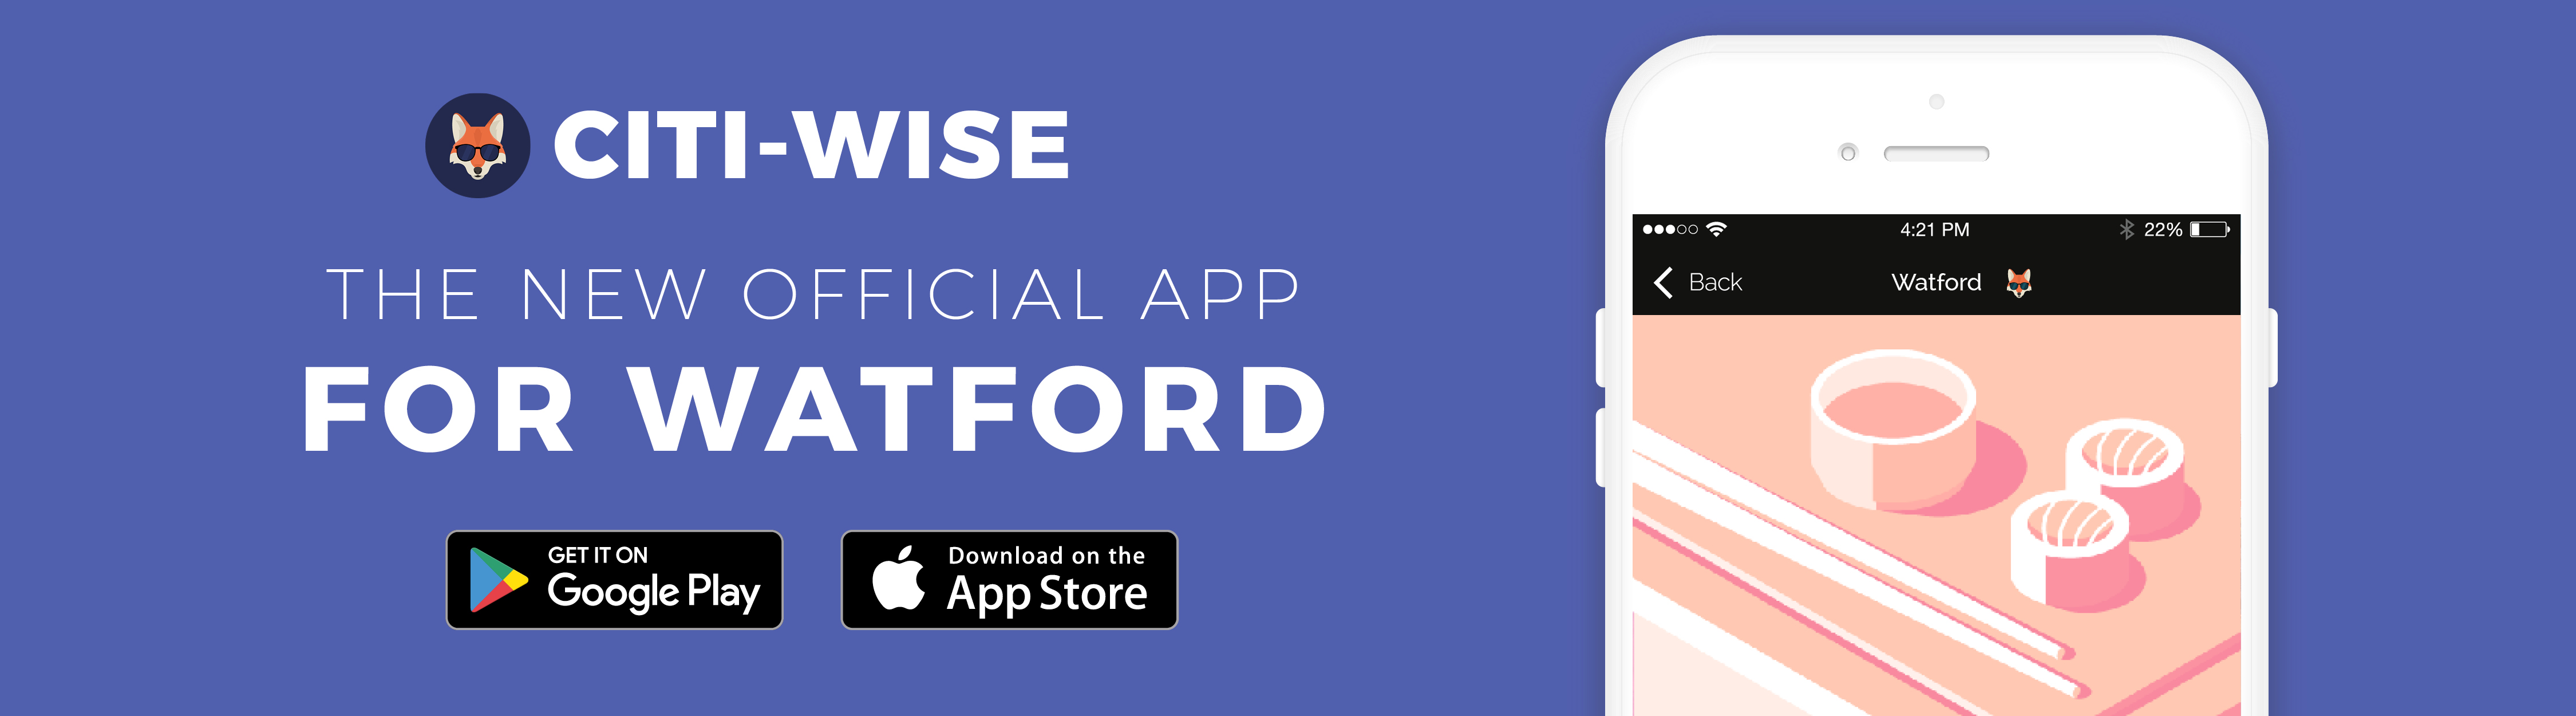 Citi-Wise: The new official app for Watford